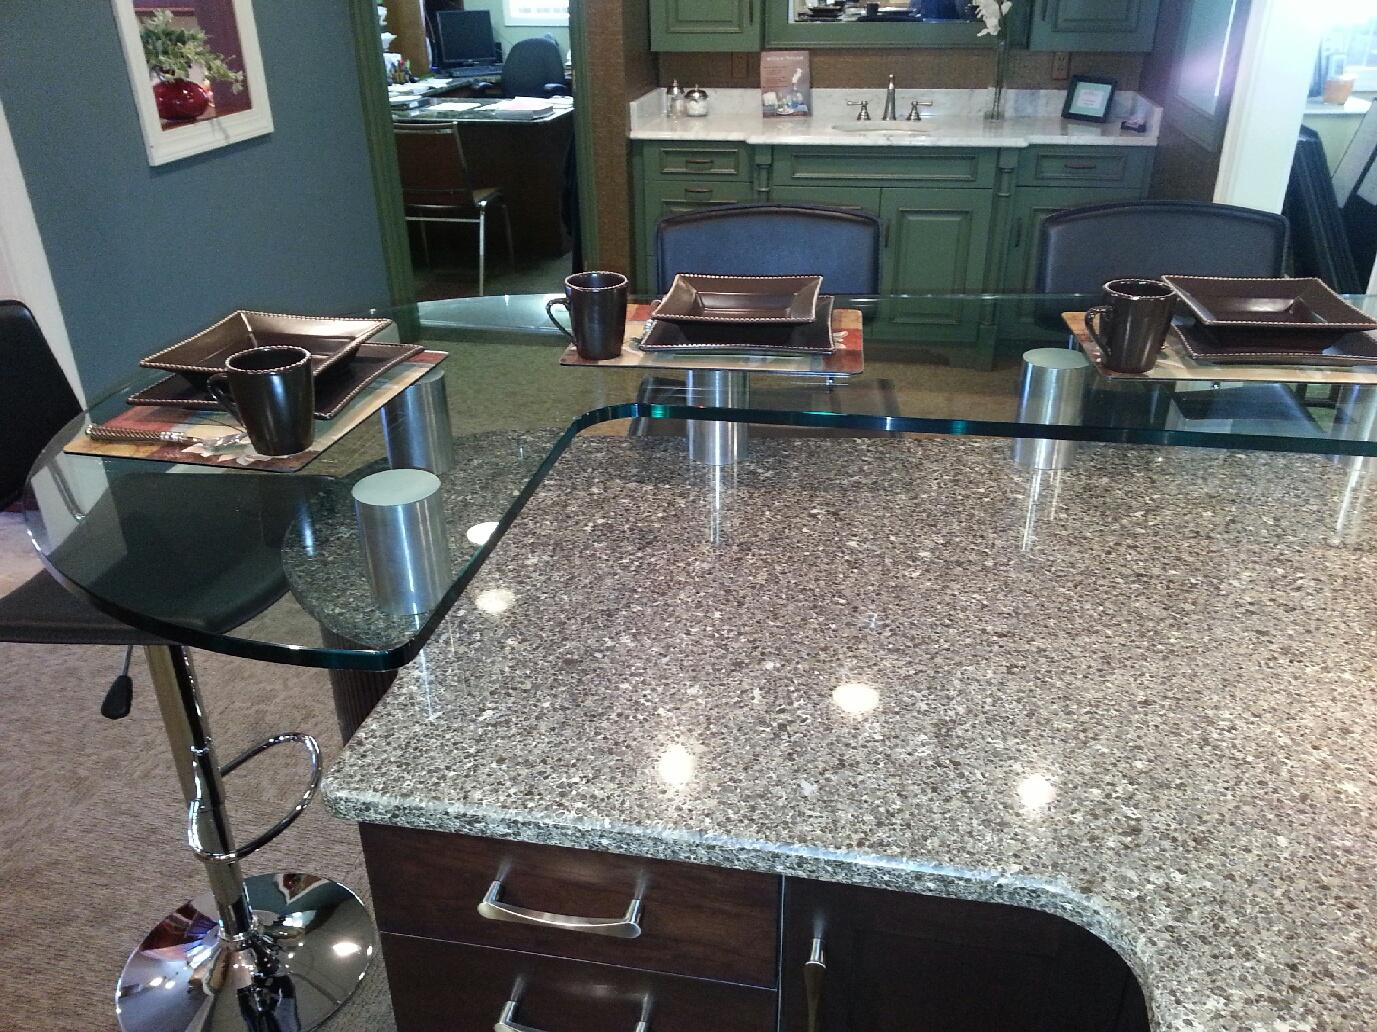 glass countertop -kitchen 3.jpg